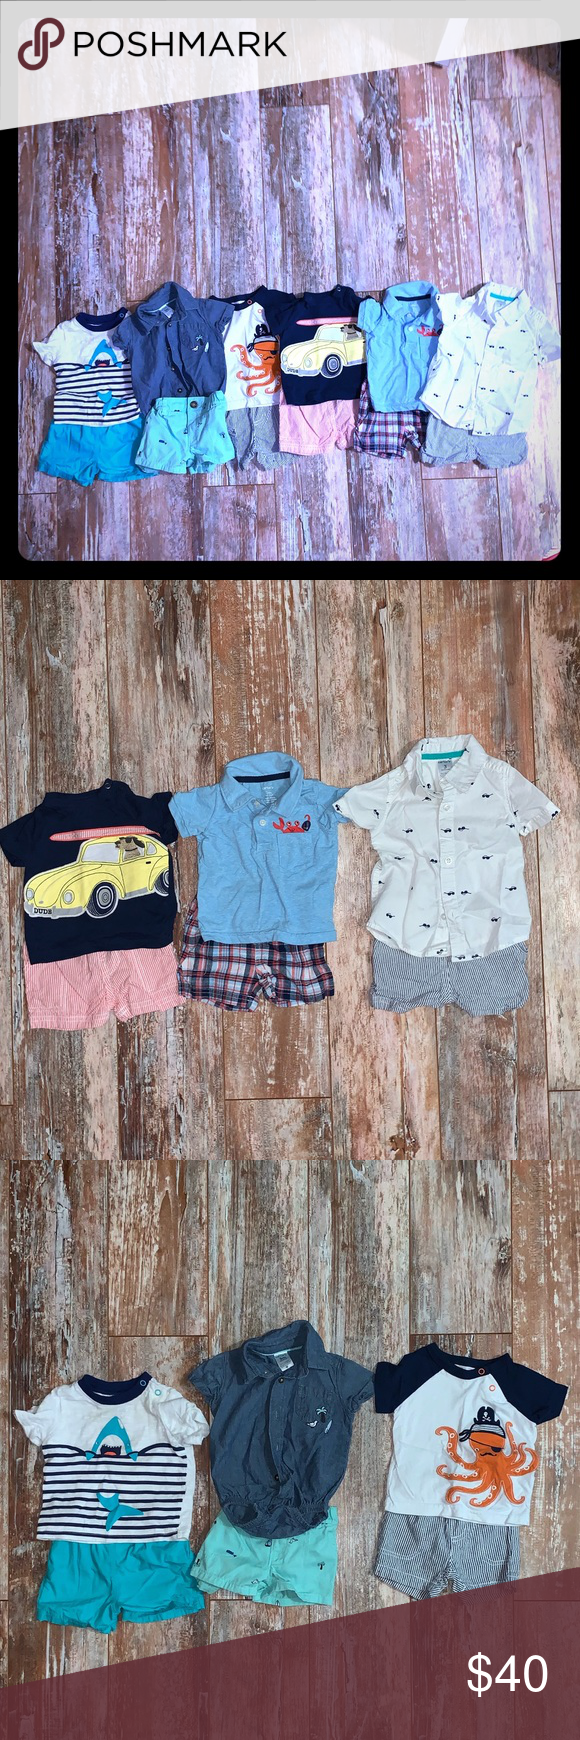 6 Carter's Beach Themed Outfits